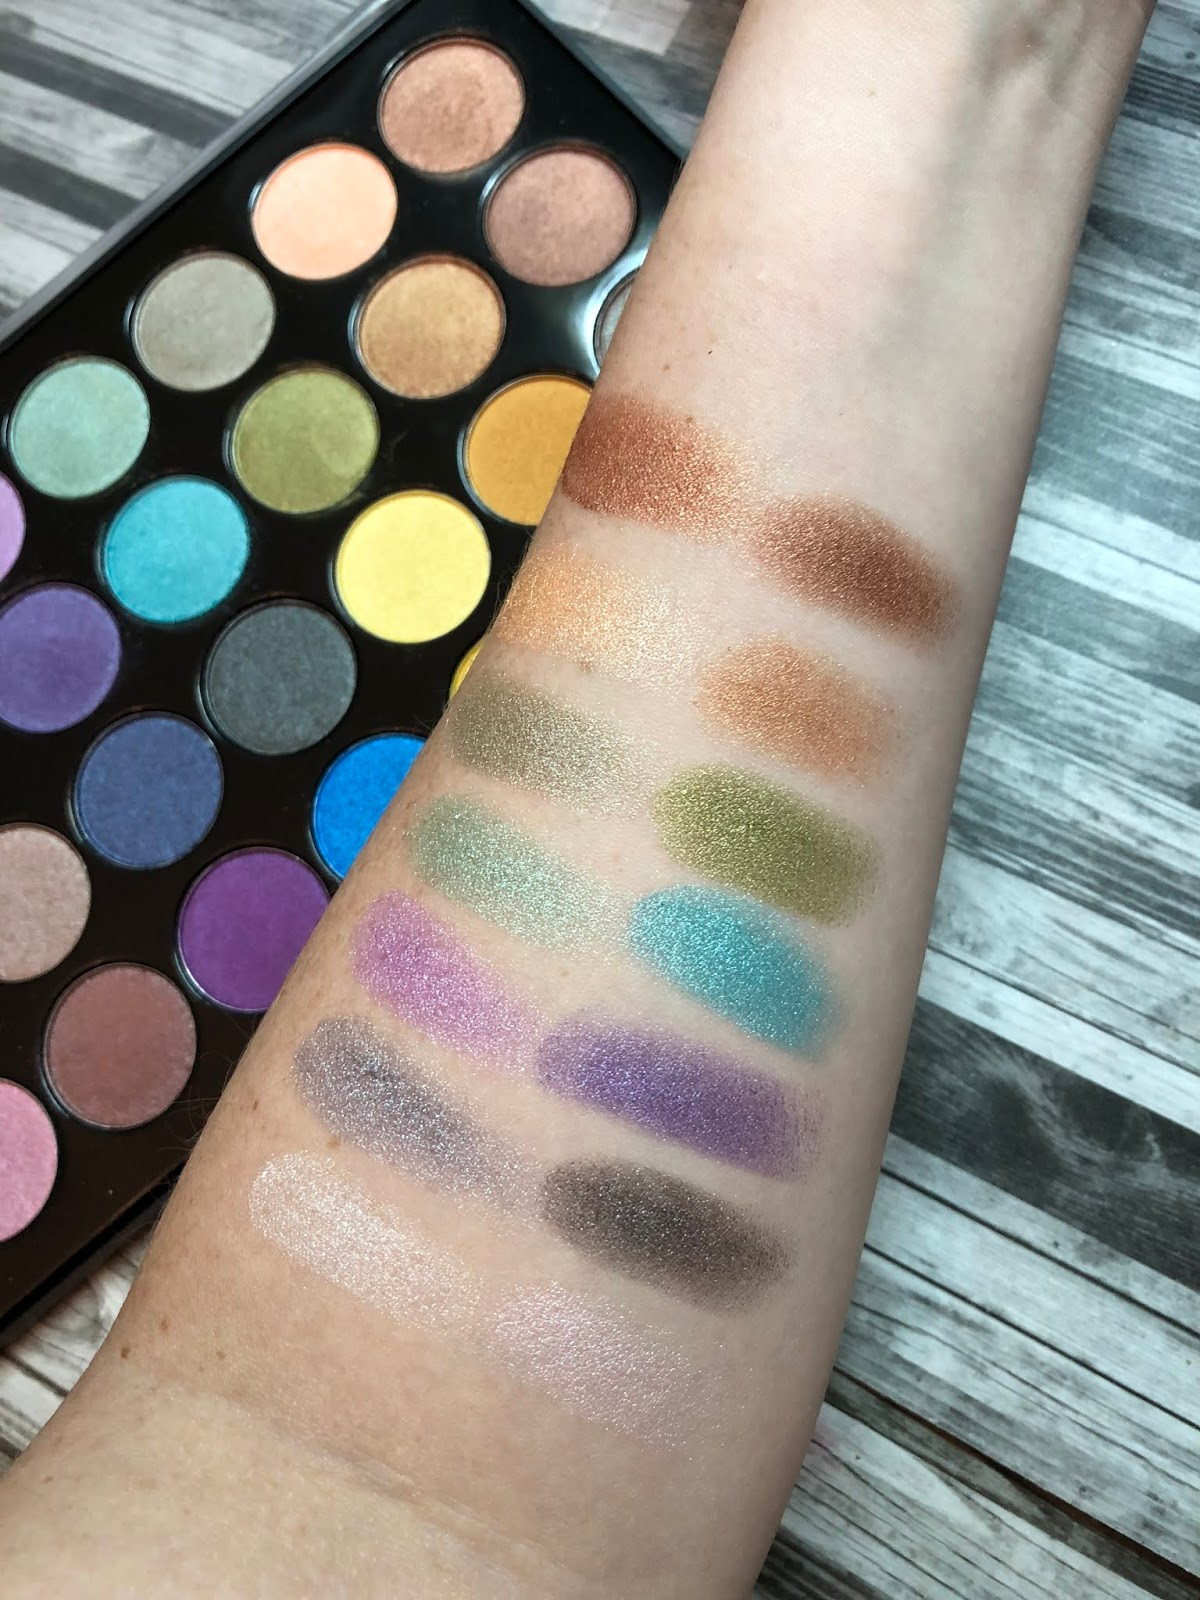 Foil Eyes 28 Color Eyeshadow Palette by BH Cosmetics #3